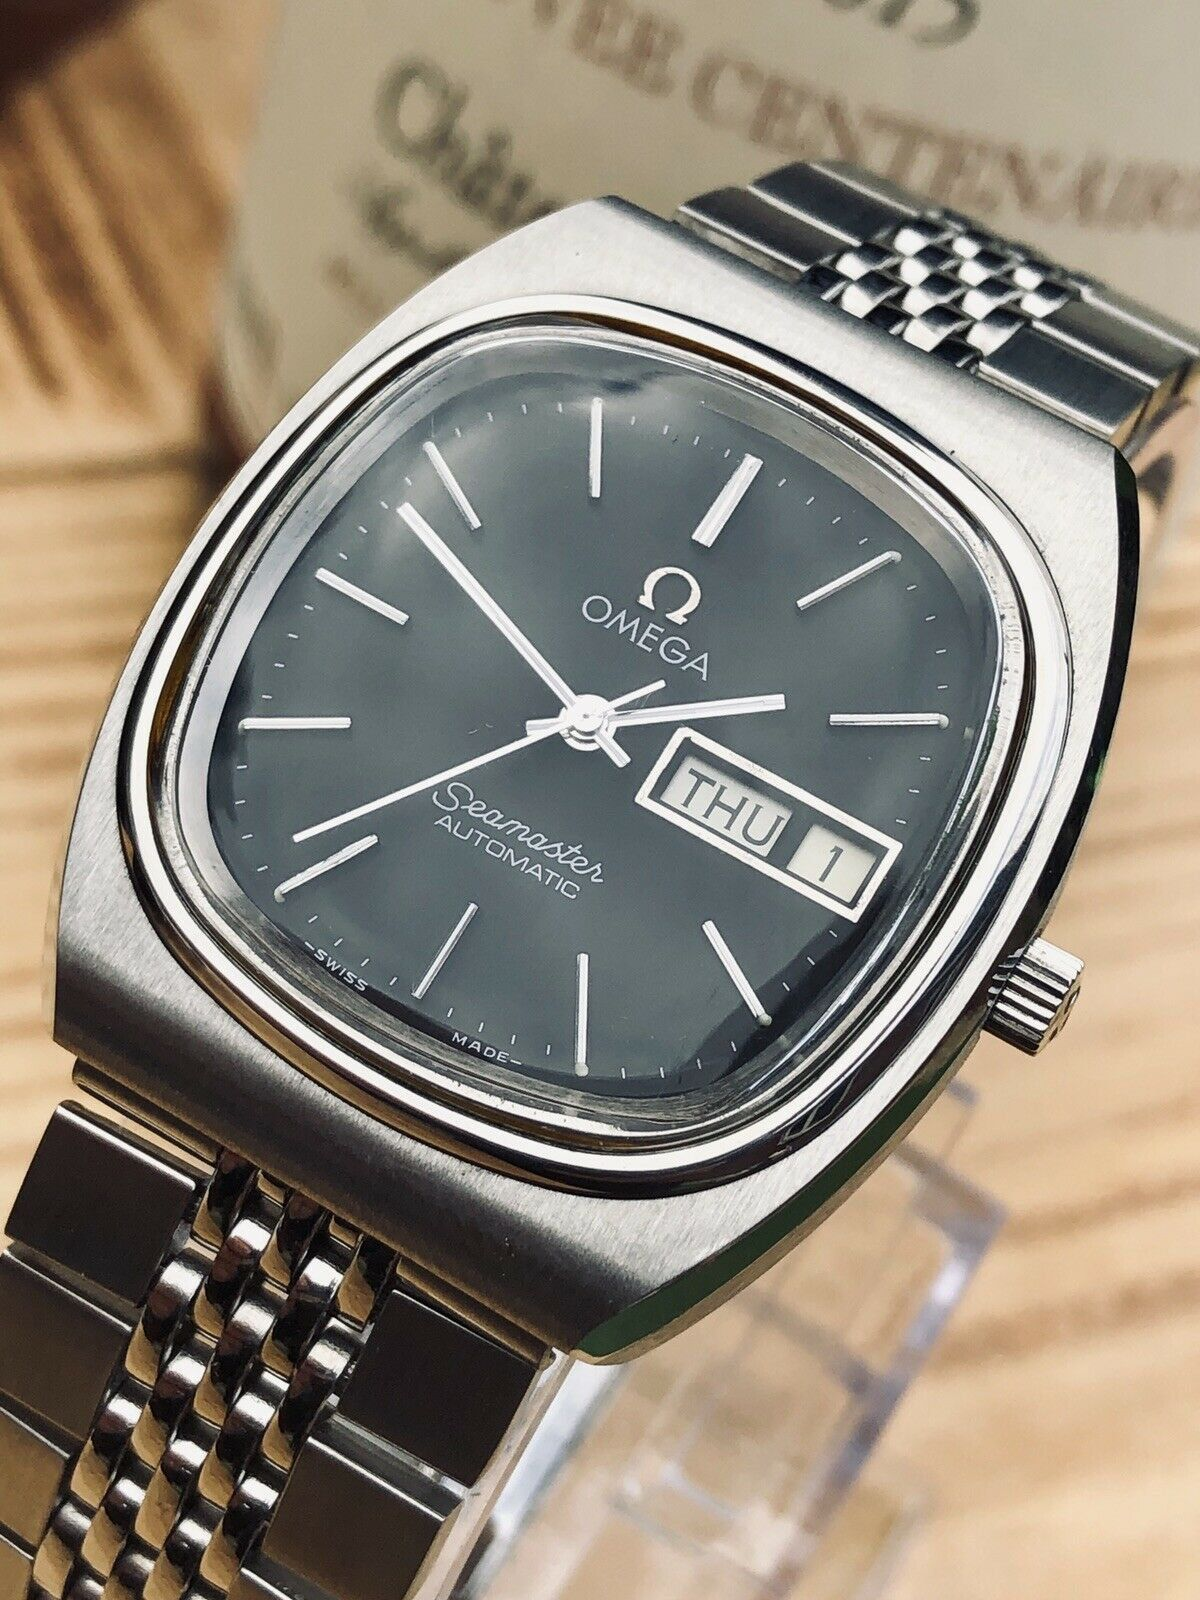 OMEGA Seamaster Day Date Calibre 1020 Steel Automatic Black Dial men Square  vintage TV dial watch | Omega seamaster, Omega, Vintage tv